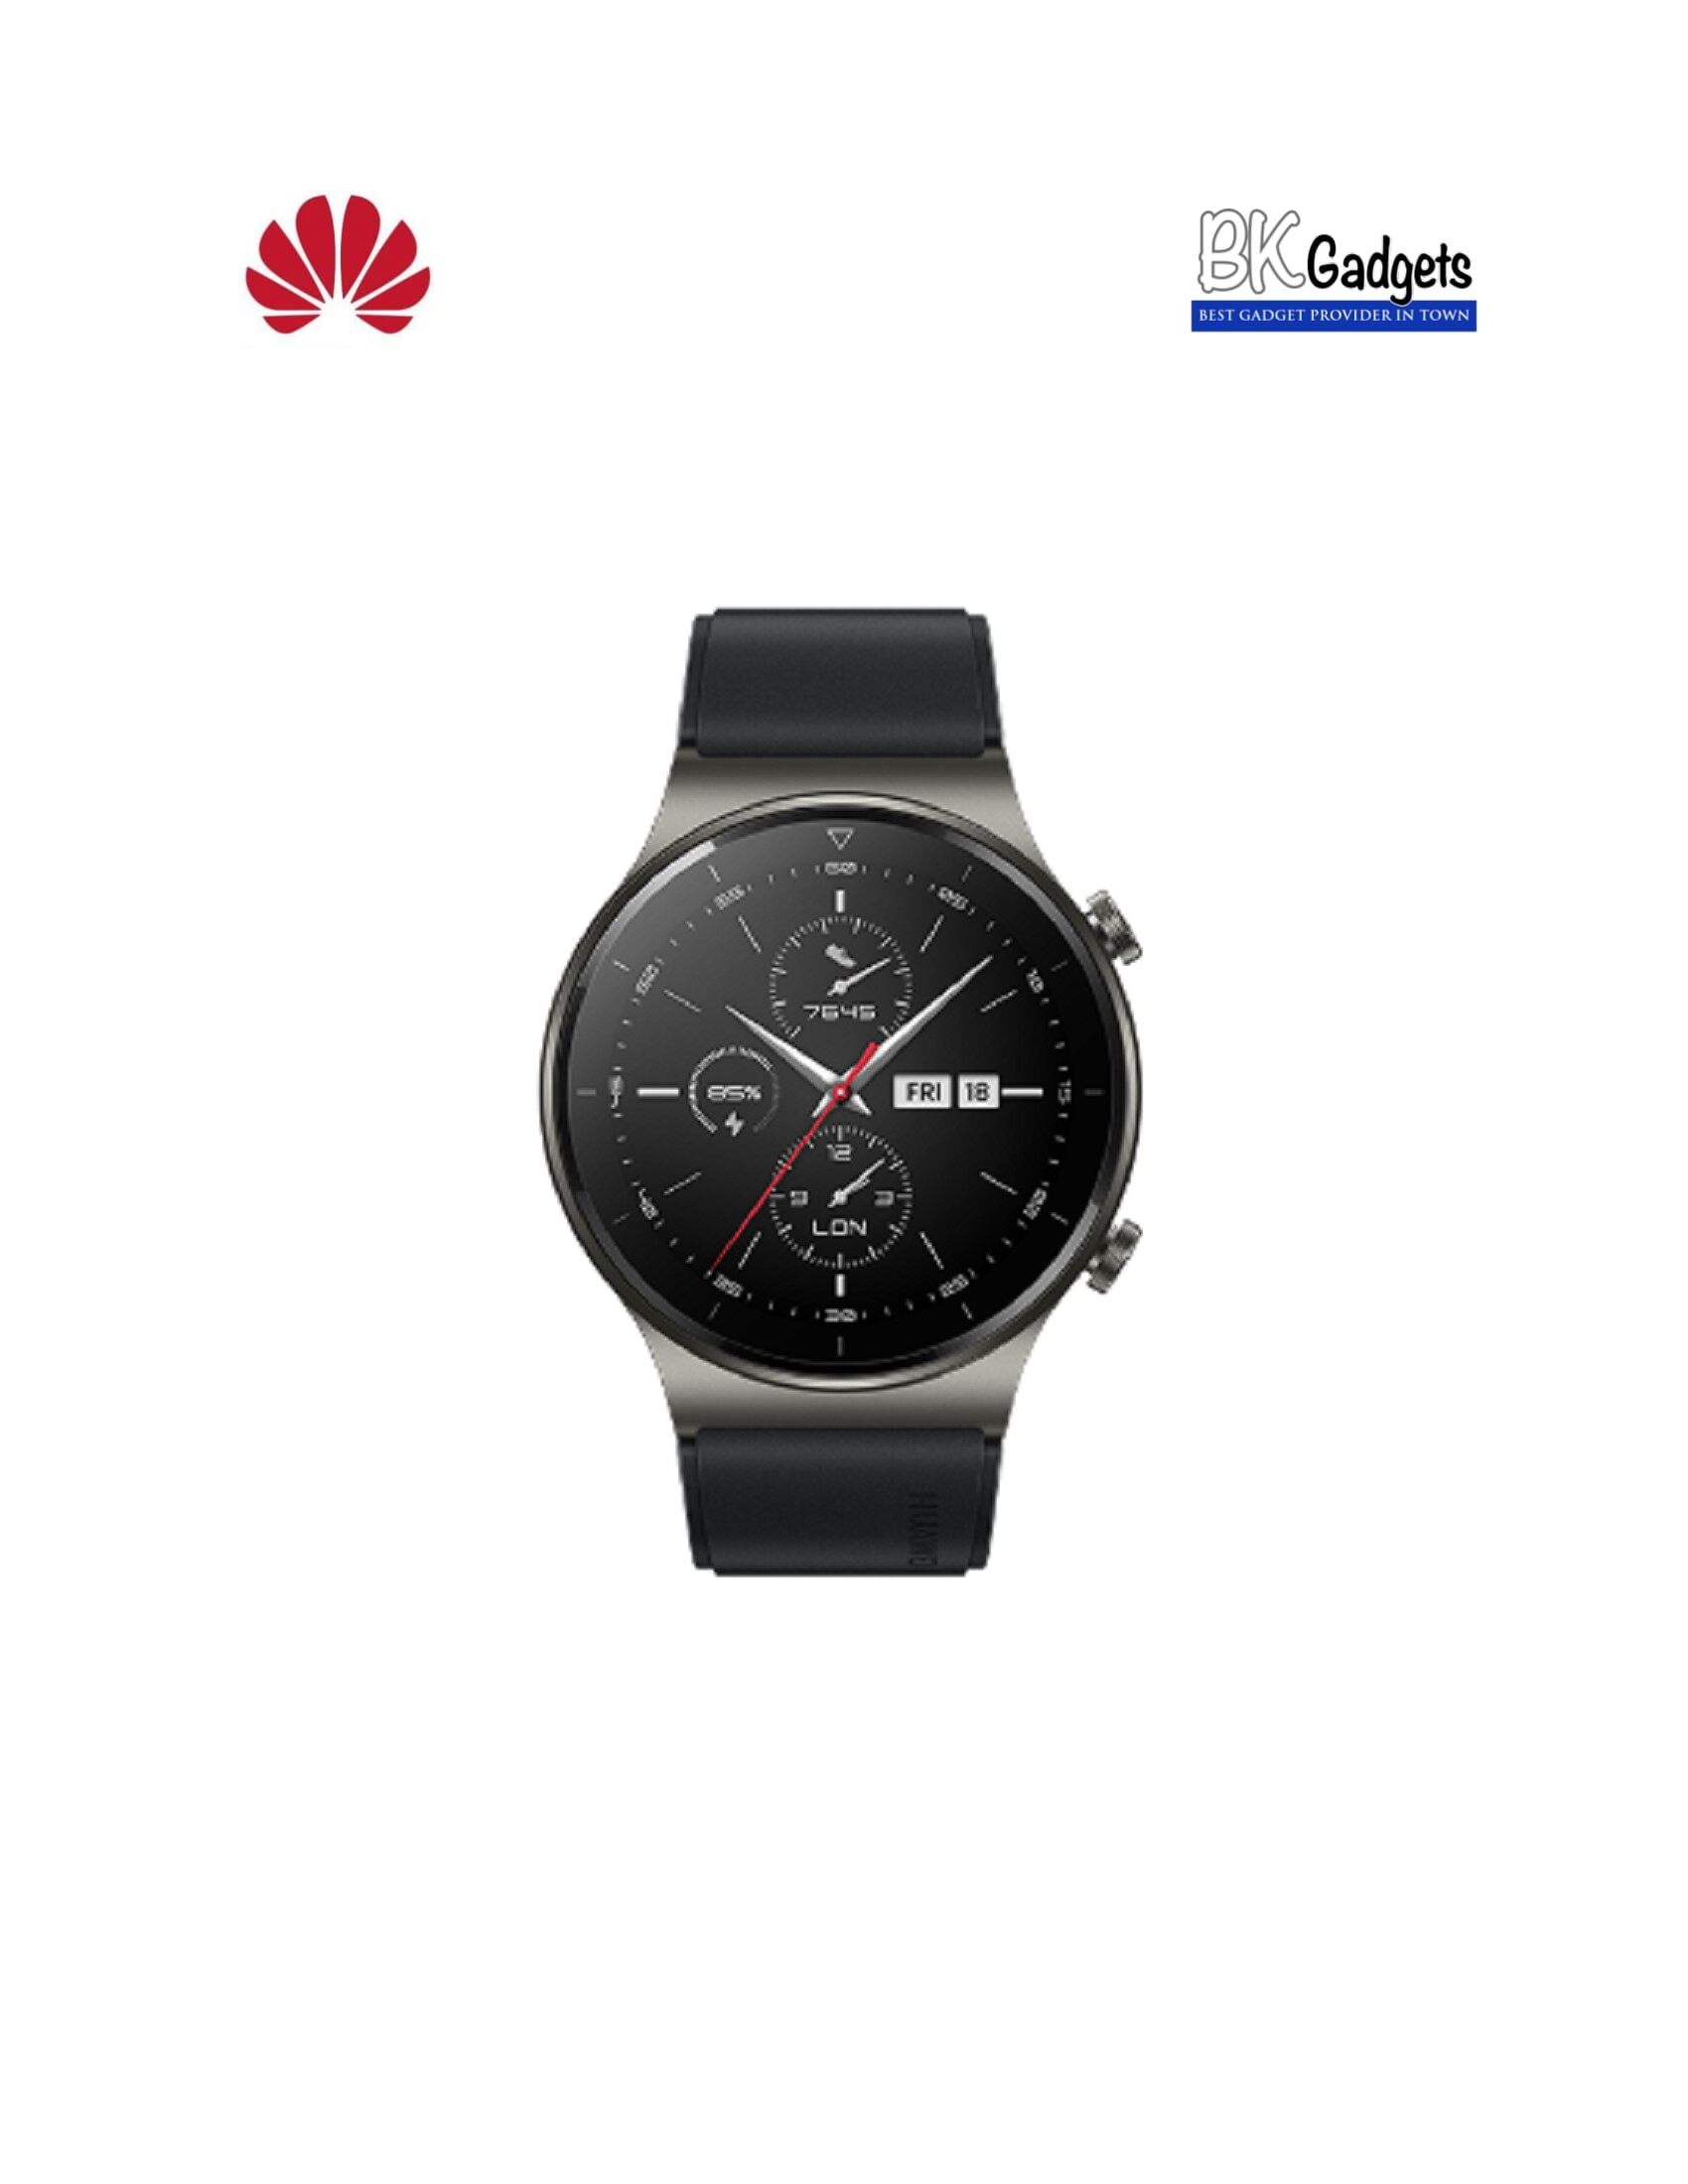 HUAWEI WATCH GT2 Pro Night Black 47mm + FREE STRAP